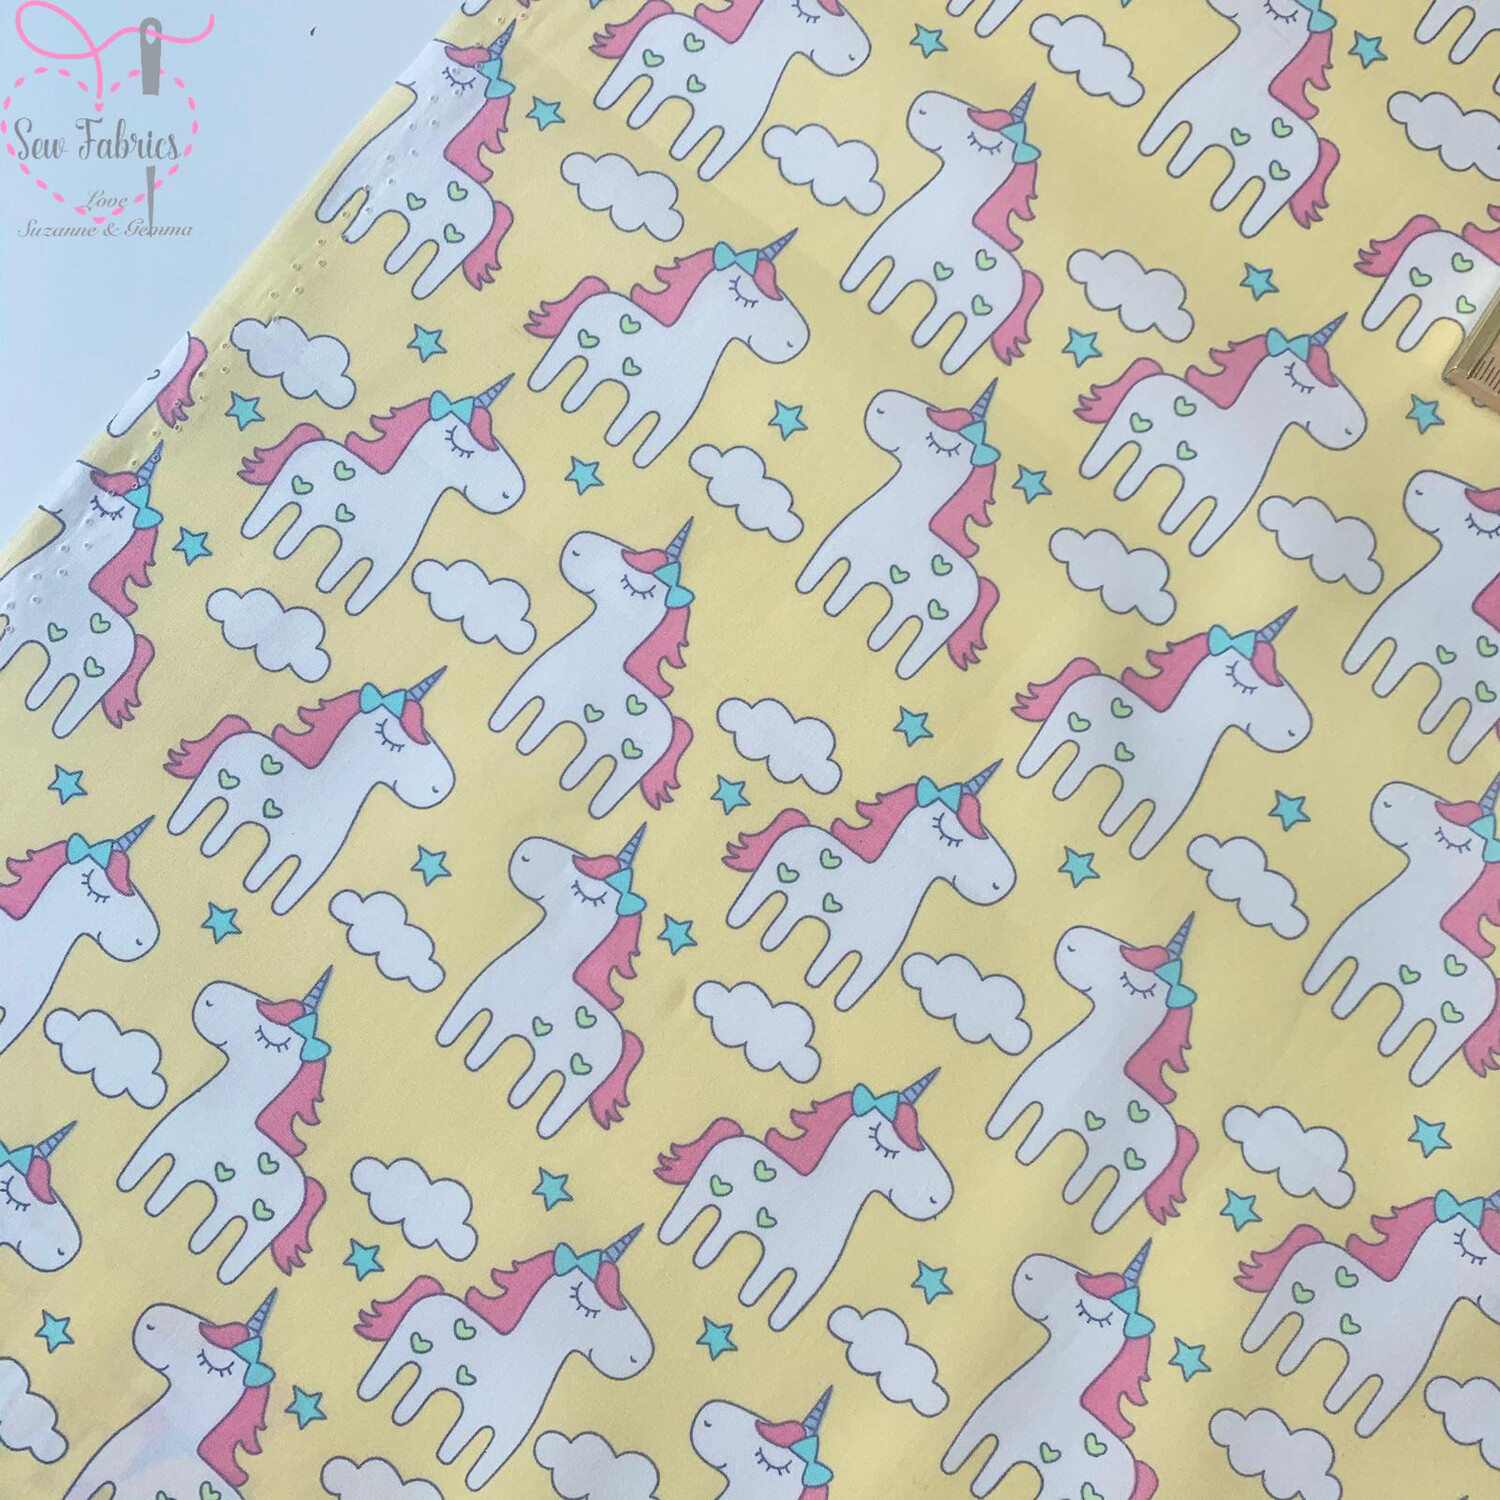 Rose and Hubble Yellow Unicorn Print Fabric 100% Cotton Poplin, Children's Material